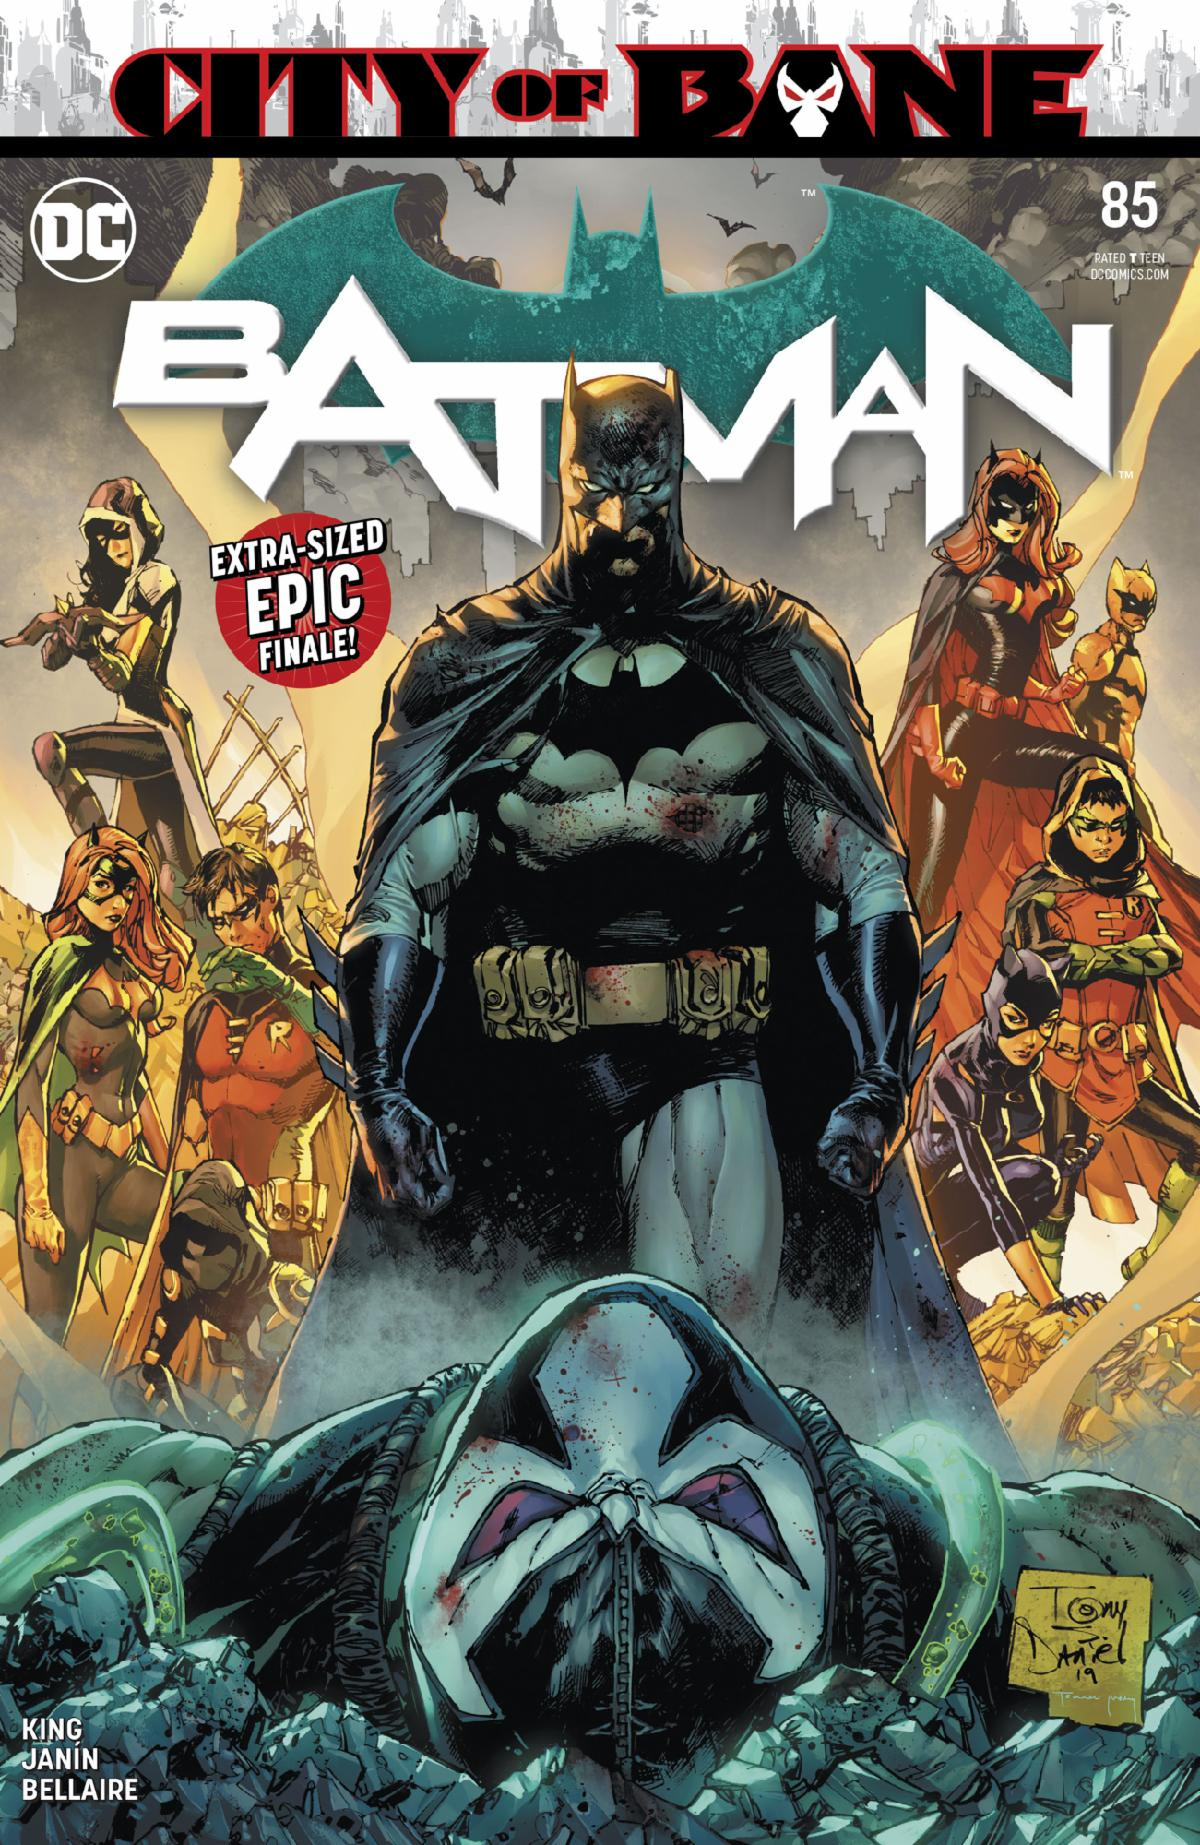 The final issue of Tom King's Batman run is here.